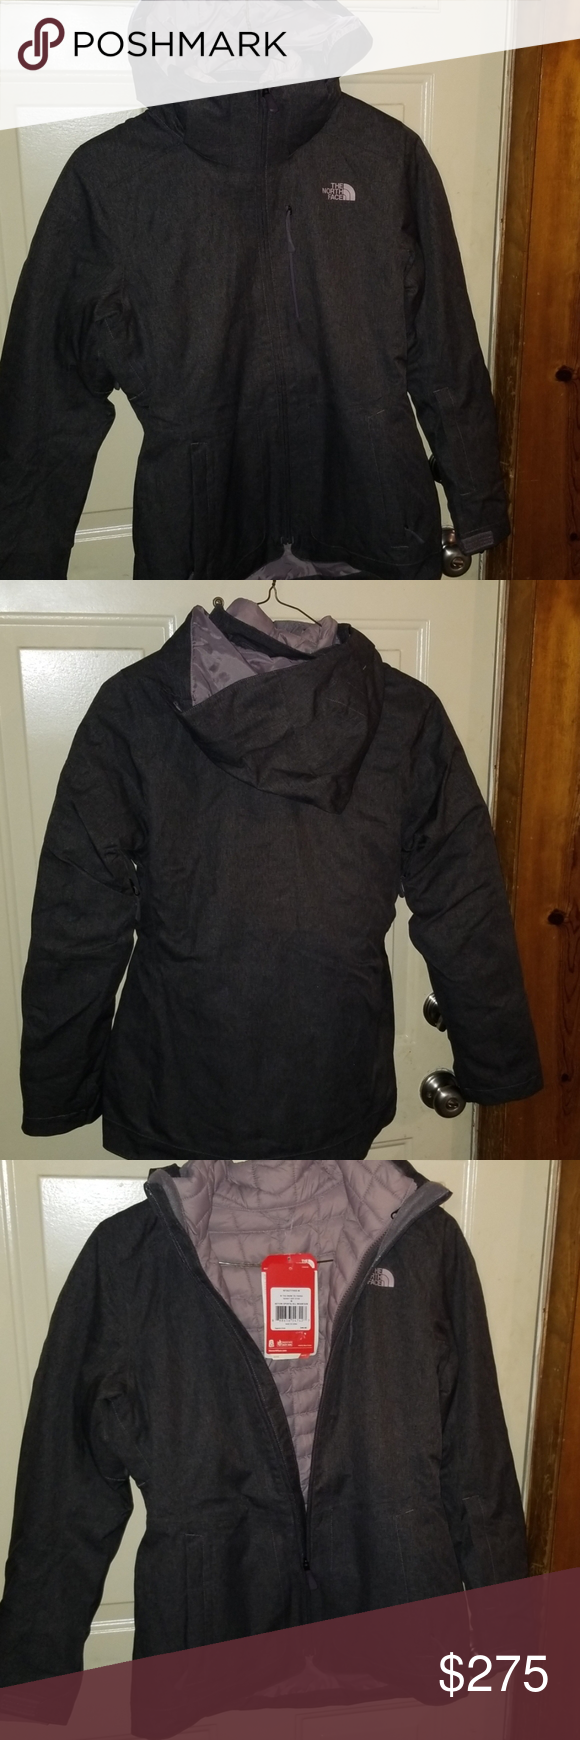 Women Two In One North Face Jacket North Face Jacket Women Two In One Jacket Brand New Never Been Wa North Face Jacket Clothes Design North Face Jacket Women S [ 1740 x 580 Pixel ]